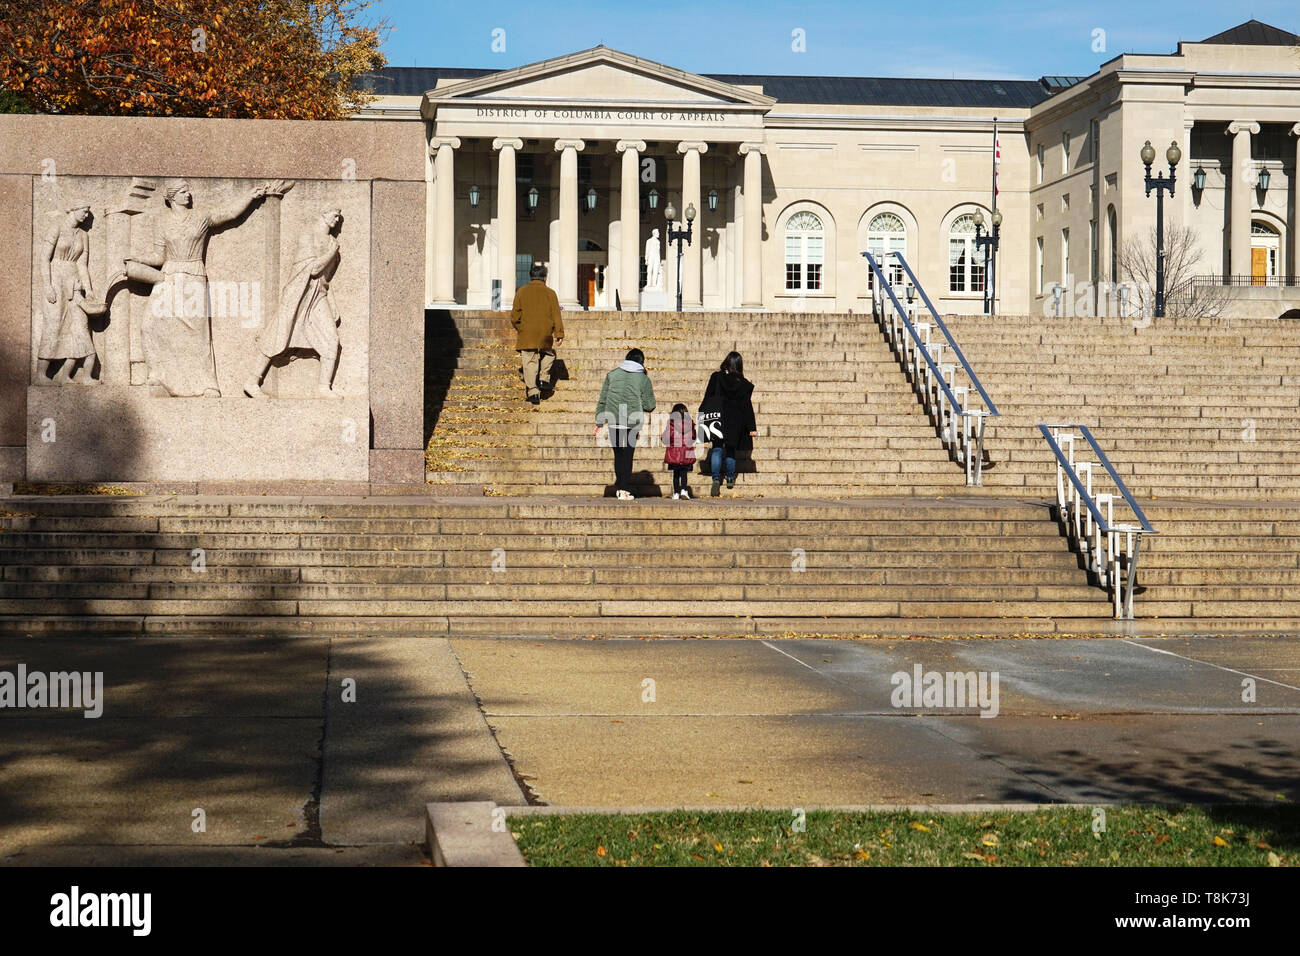 District of Columbia Court of Appeals in Judiciary Square. Washington D.C.USA Stock Photo